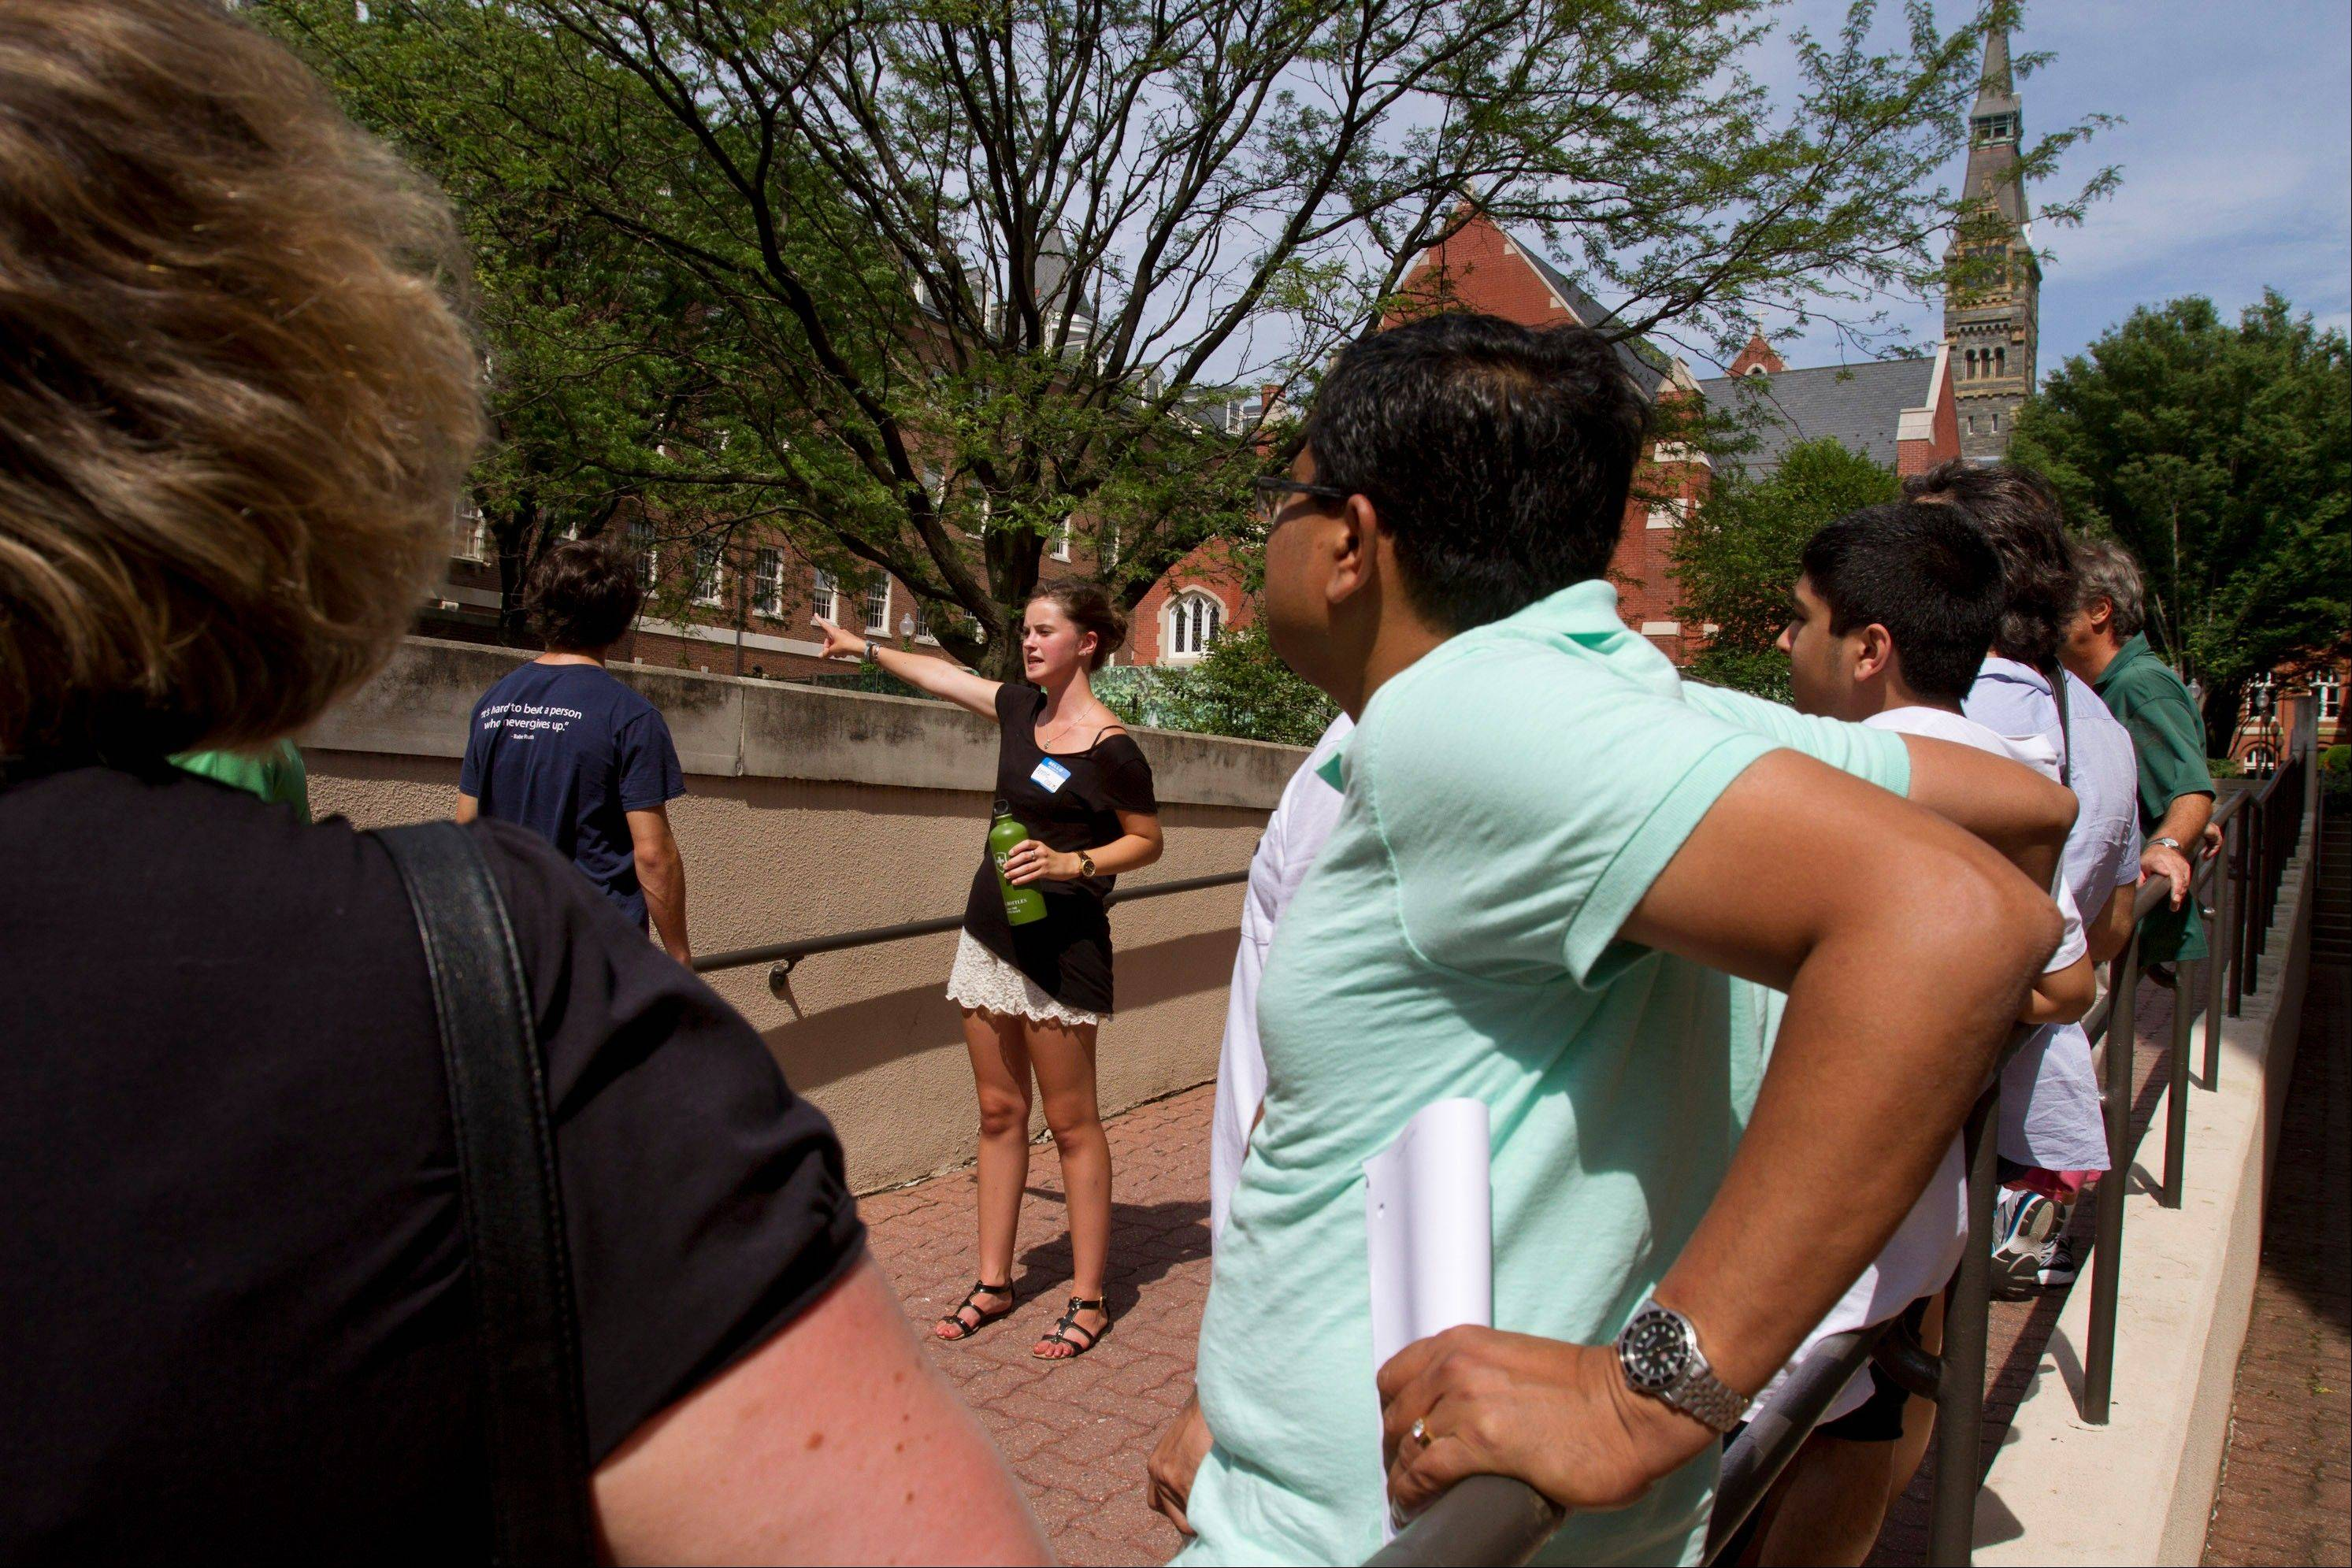 Prospective students and their parents tour Georgetown University's campus in Washington, Wednesday. The defeat of a student loan bill in the Senate on Wednesday clears the way for fresh negotiations to restore lower rates, but lawmakers are racing the clock before millions of students return to campus next month to find borrowing terms twice as high as when school let out.